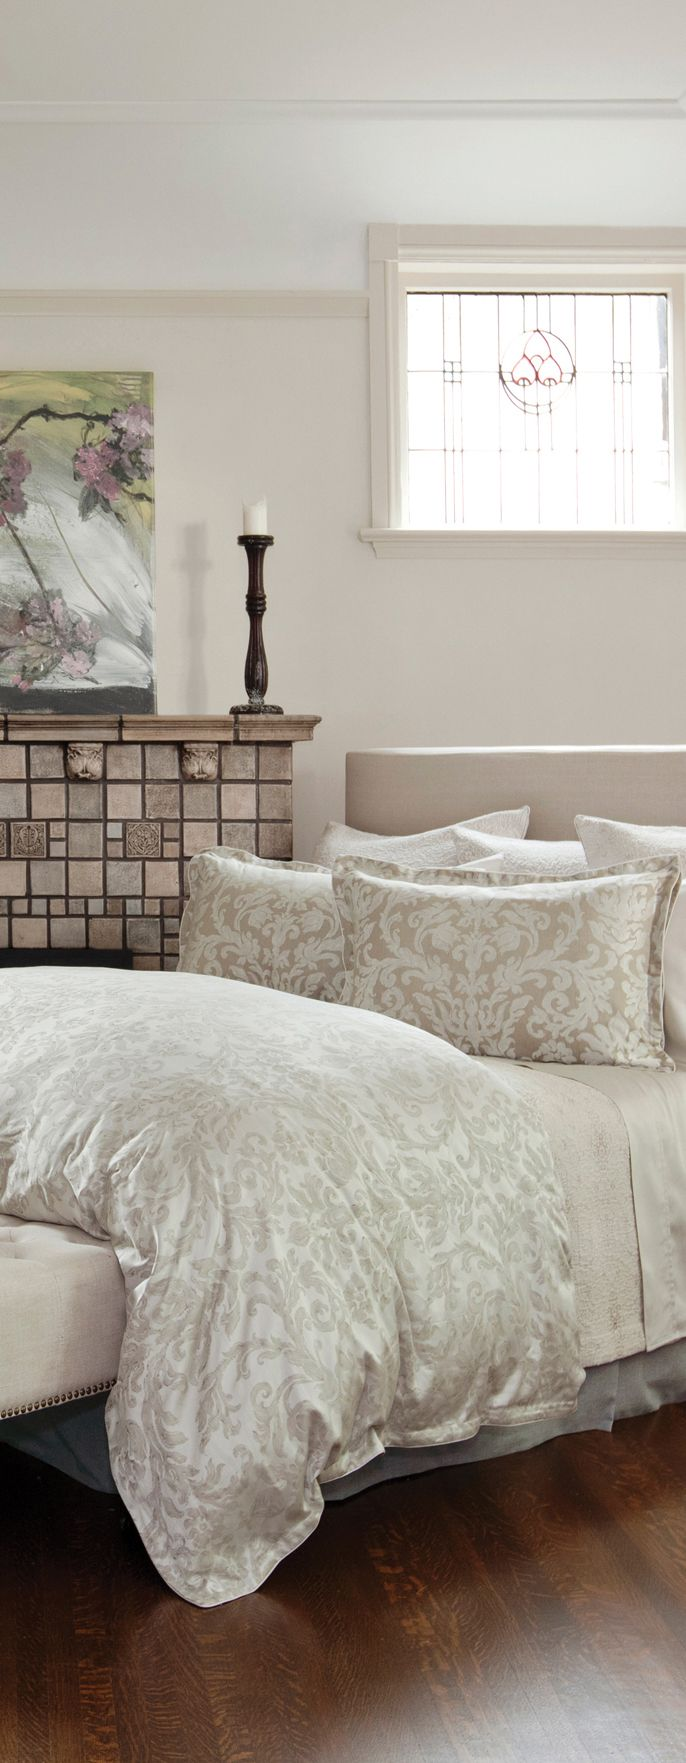 Catalina Terra - St. Geneve Cristalli Collection Fall 2015 #light #bedding #luxury #design #traditional